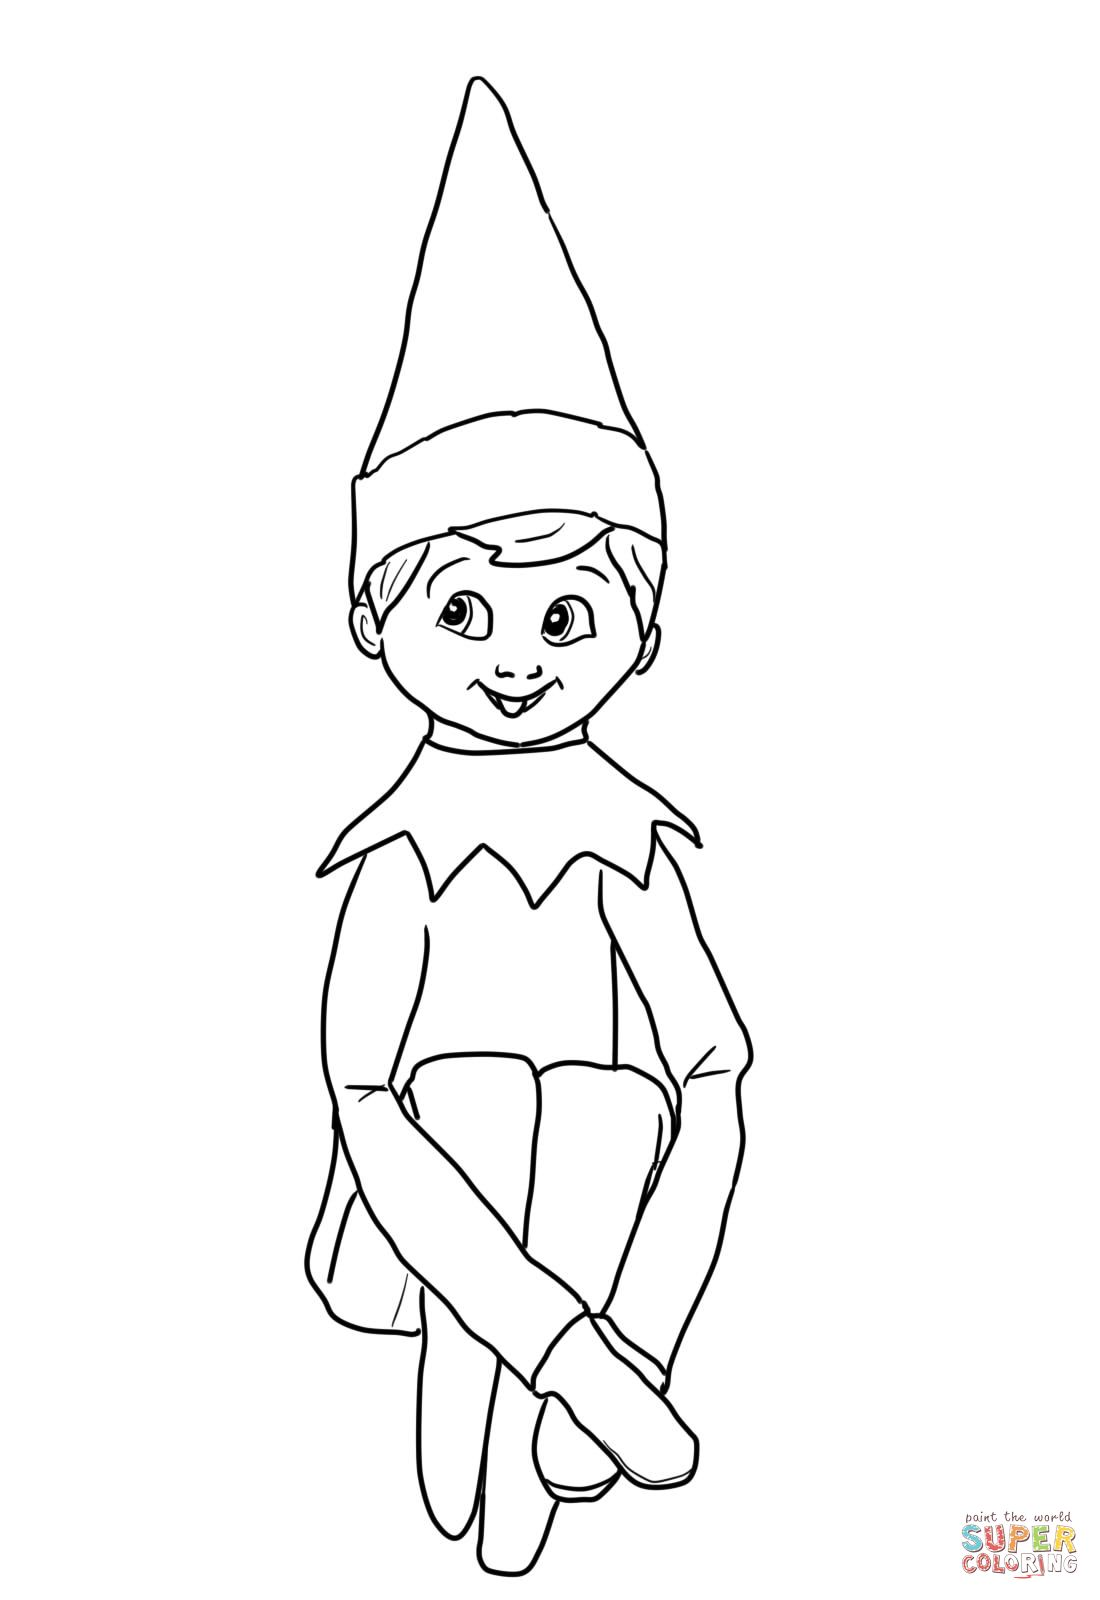 Santa And Elf On Shelf Coloring Pages